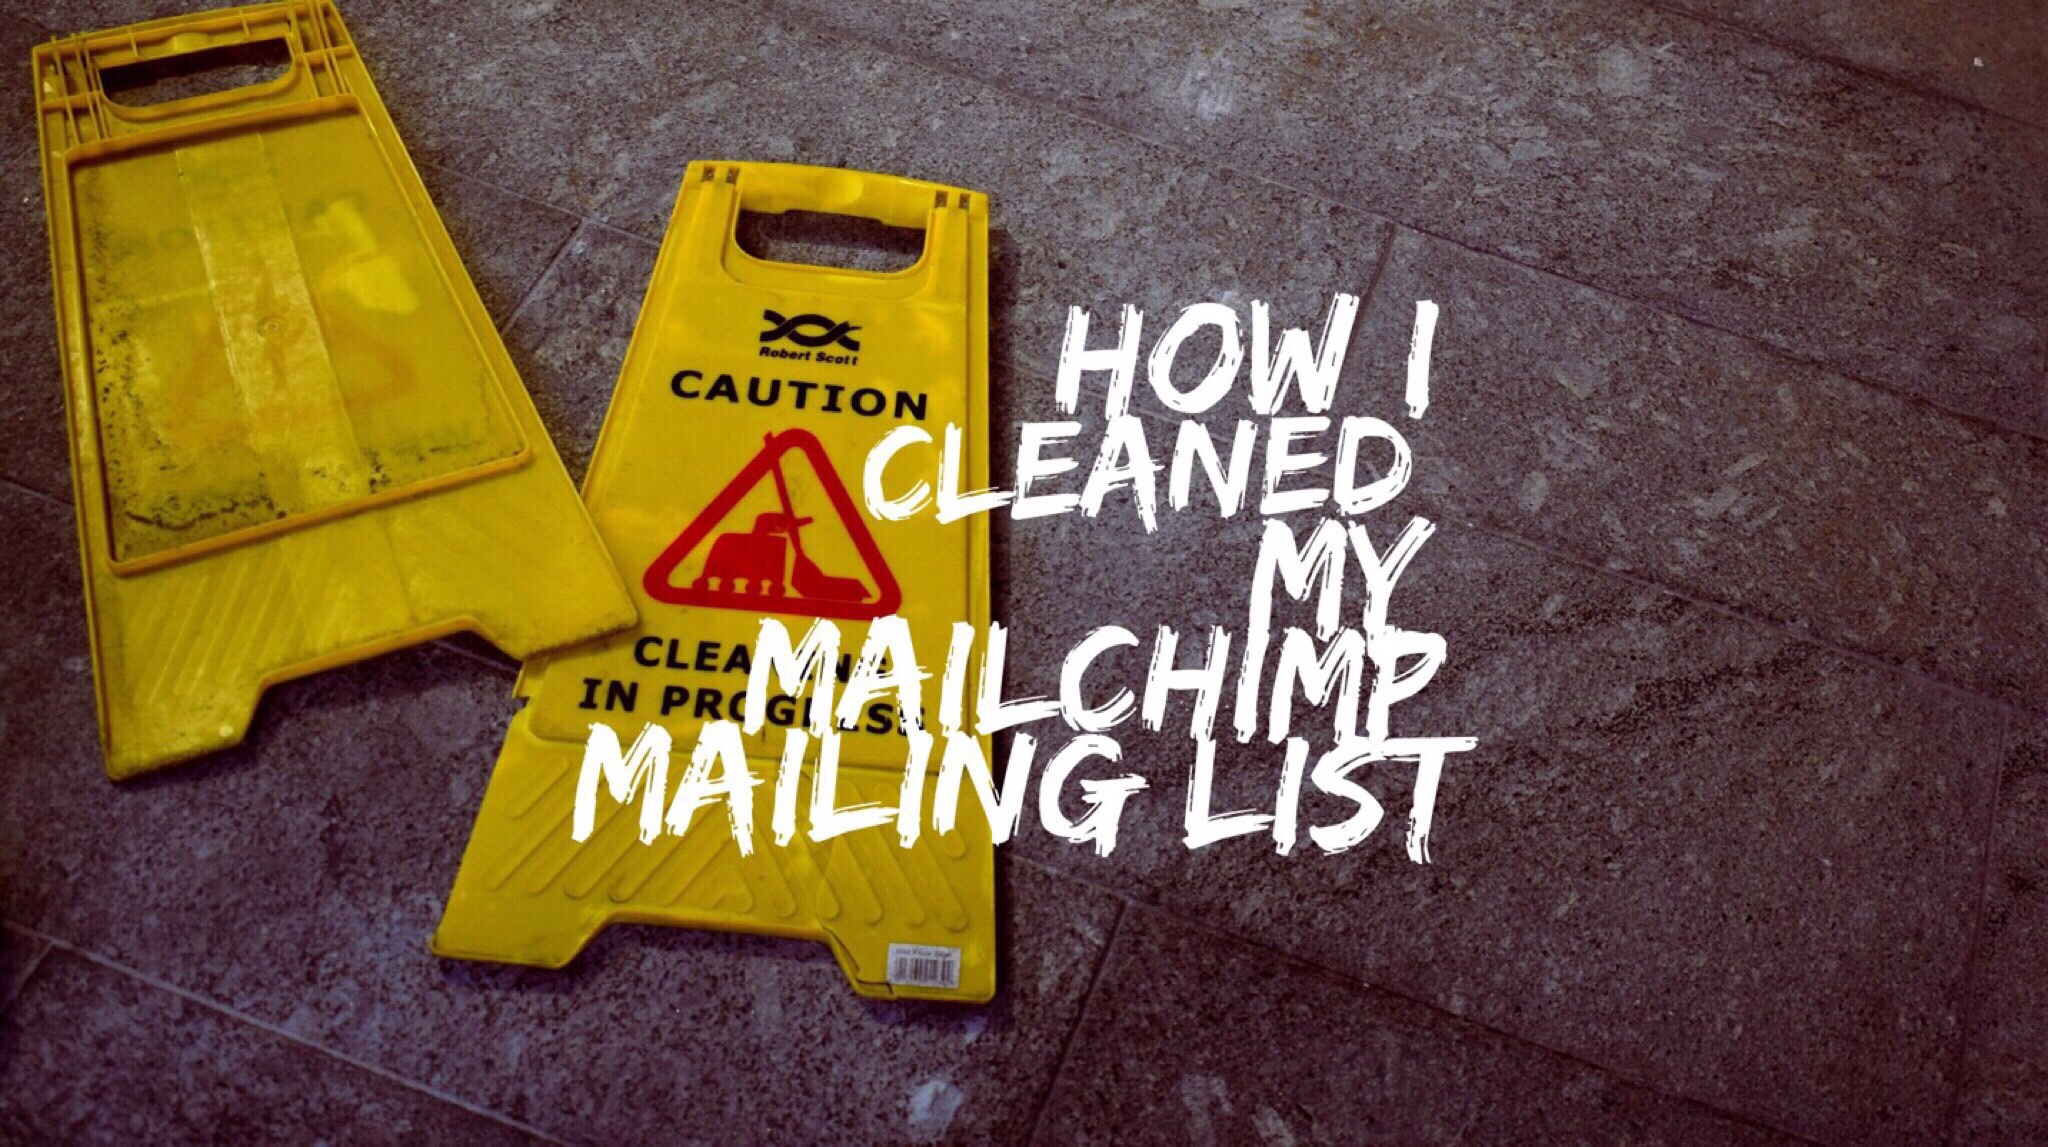 How I cleaned my MailChimp mailing list